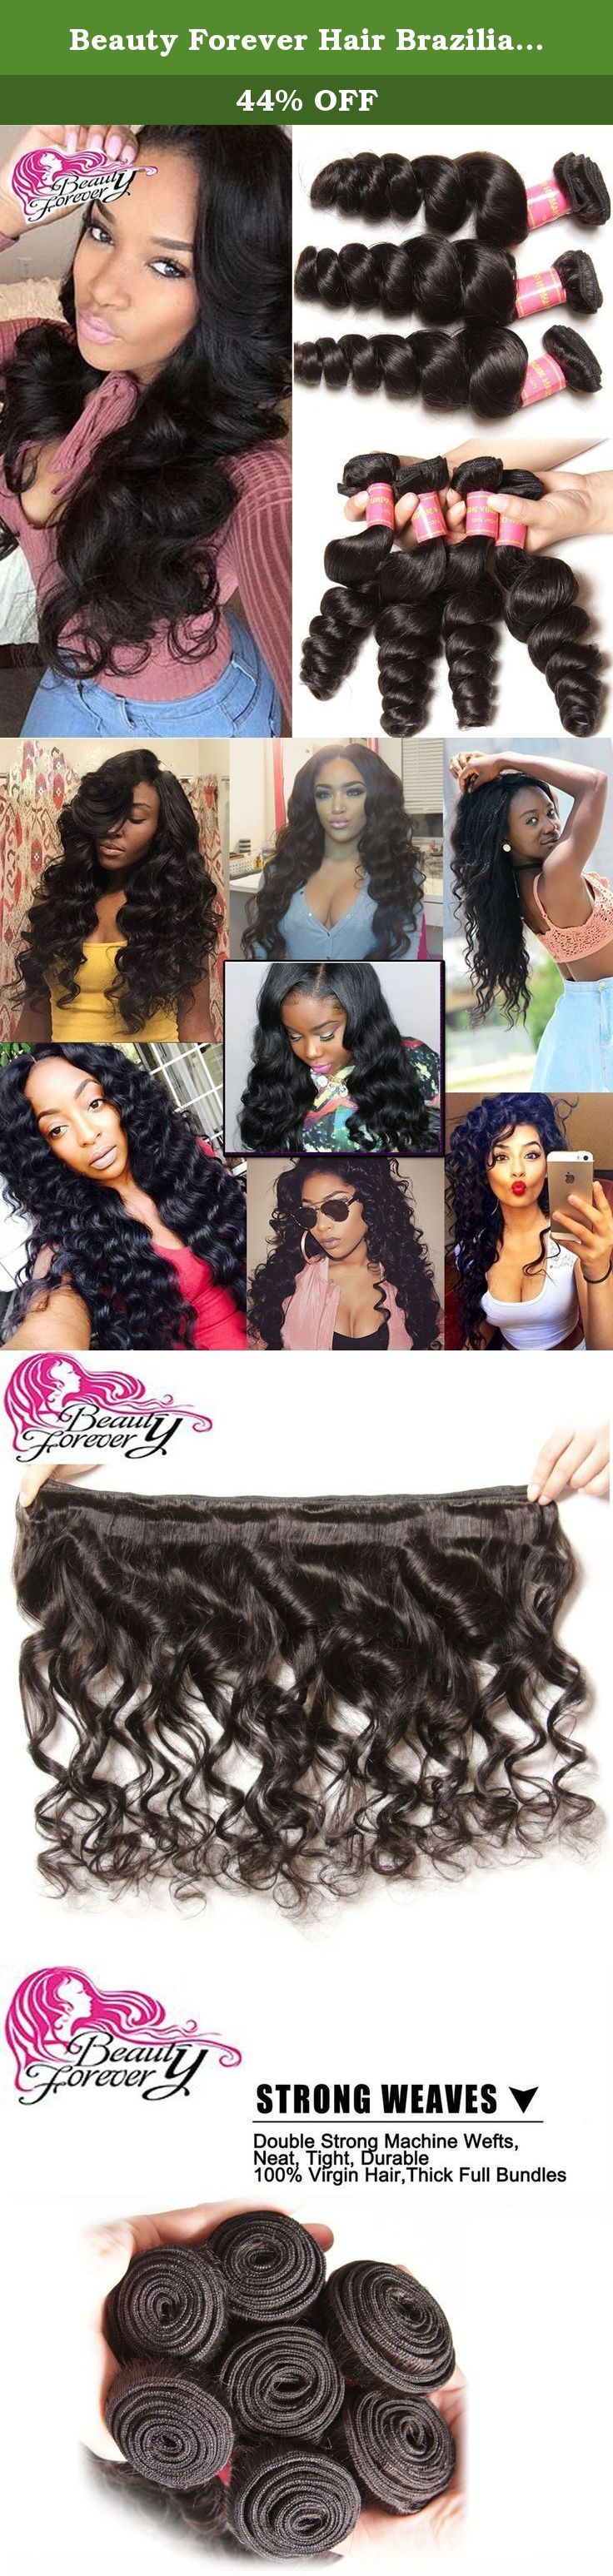 Beauty Forever Hair Brazilian Virgin Hair Loose Wave Weft 3bundles 100% Unprocessed Human Virgin Remy Hair Extensions Natural Color 95-100g/pc (16 16 16). Hair material: 100% virgin human hair without any synthetic hair, no animal hair Hair color: Natural color 1b# Hair density: thick enough Texture:loose wave Advantages: 1) Can be dyed and bleached 2) Tangle & Shedding free 3) Clean, soft and smooth, no bad smell All of beauty forever is 100% human virgin hair. with the cuticle layers...